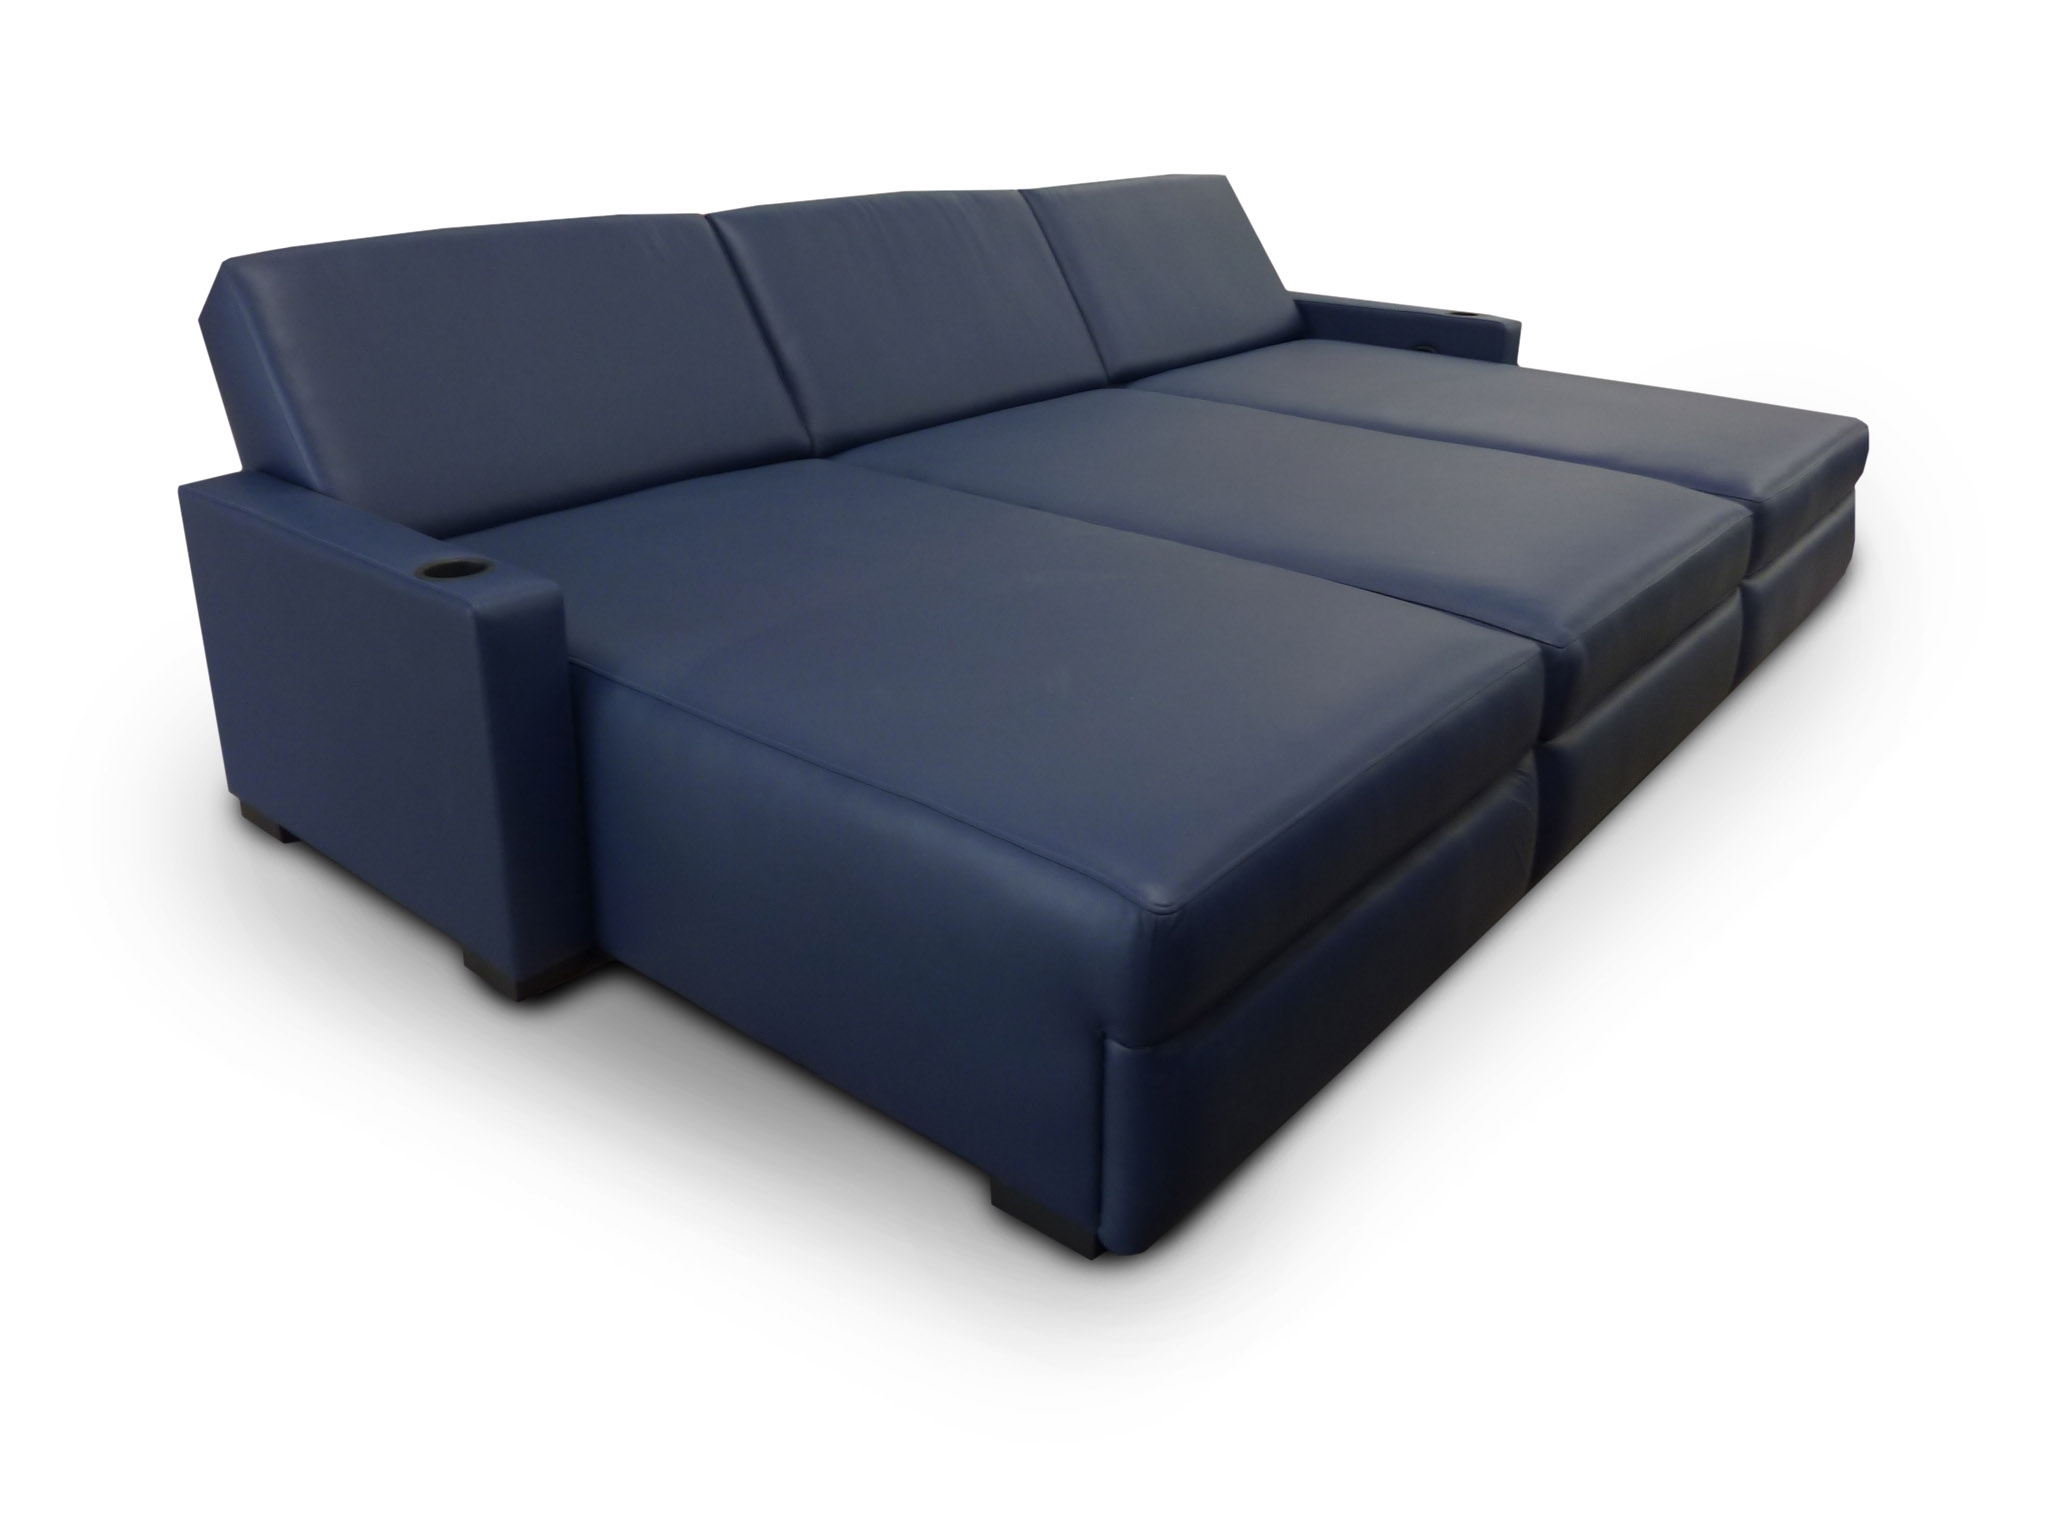 Fully Upholstered Lounger